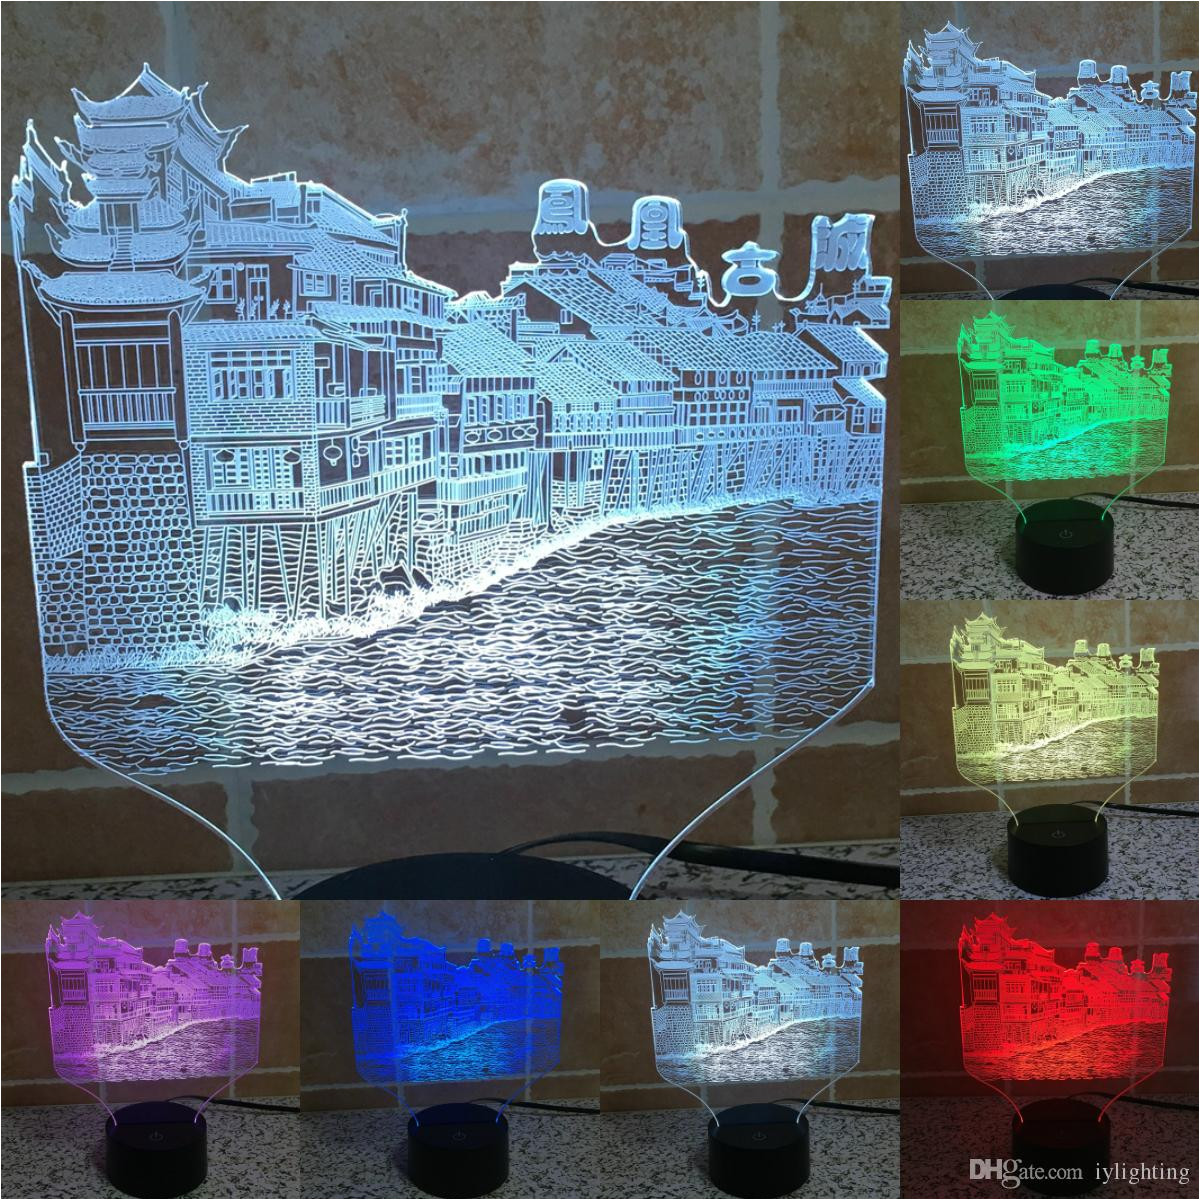 2018 creative chinese historical city of phoenix 3d light usb led touch switch changing visual illusion night light iy803515 from iylighting